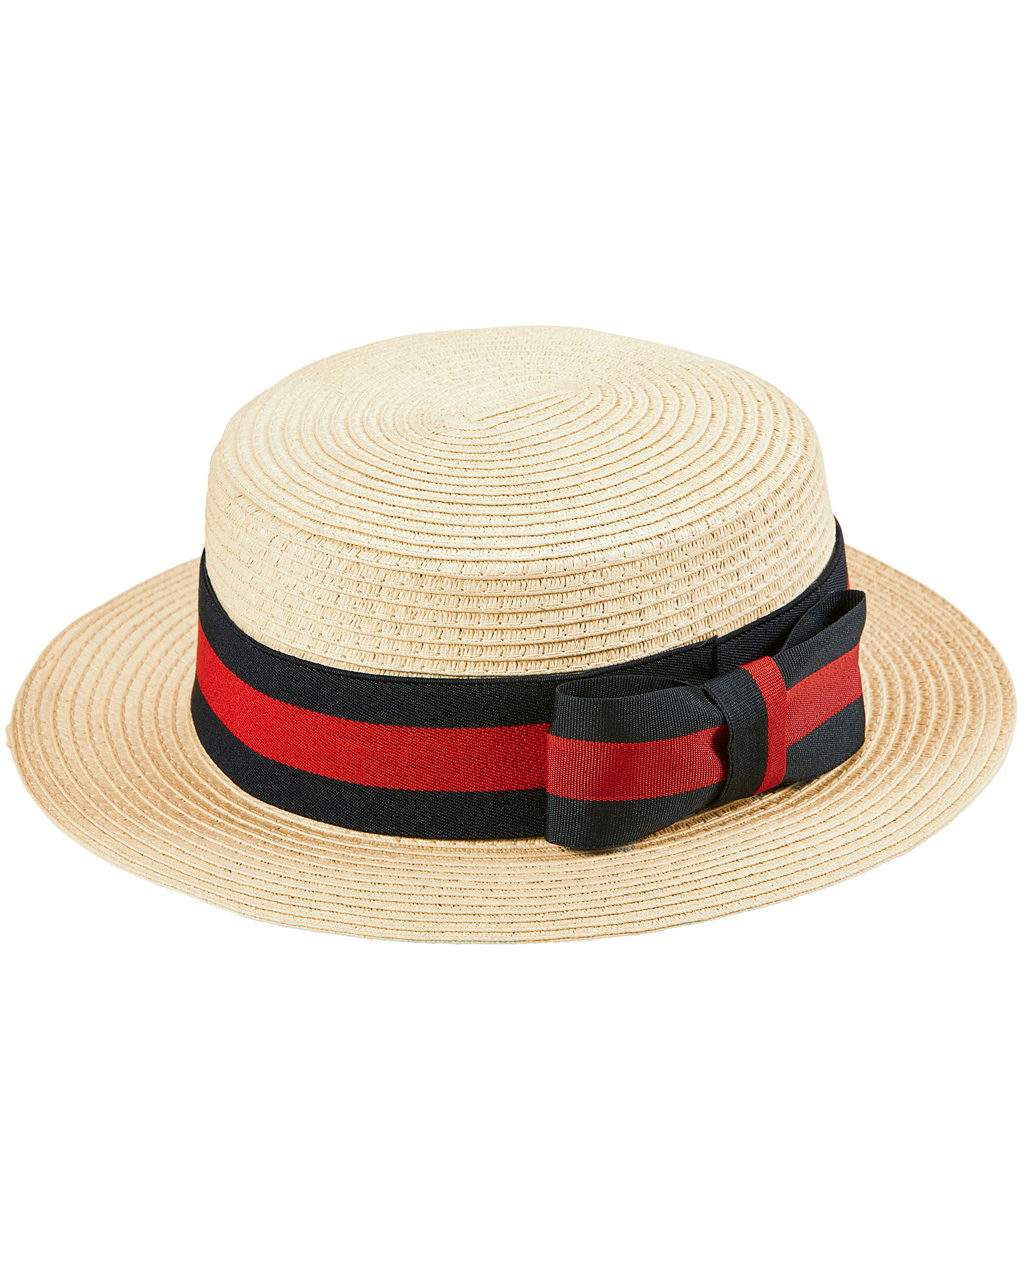 52707651d3802e Straw Hat Deluxe With Hatband to buy | horror-shop.com